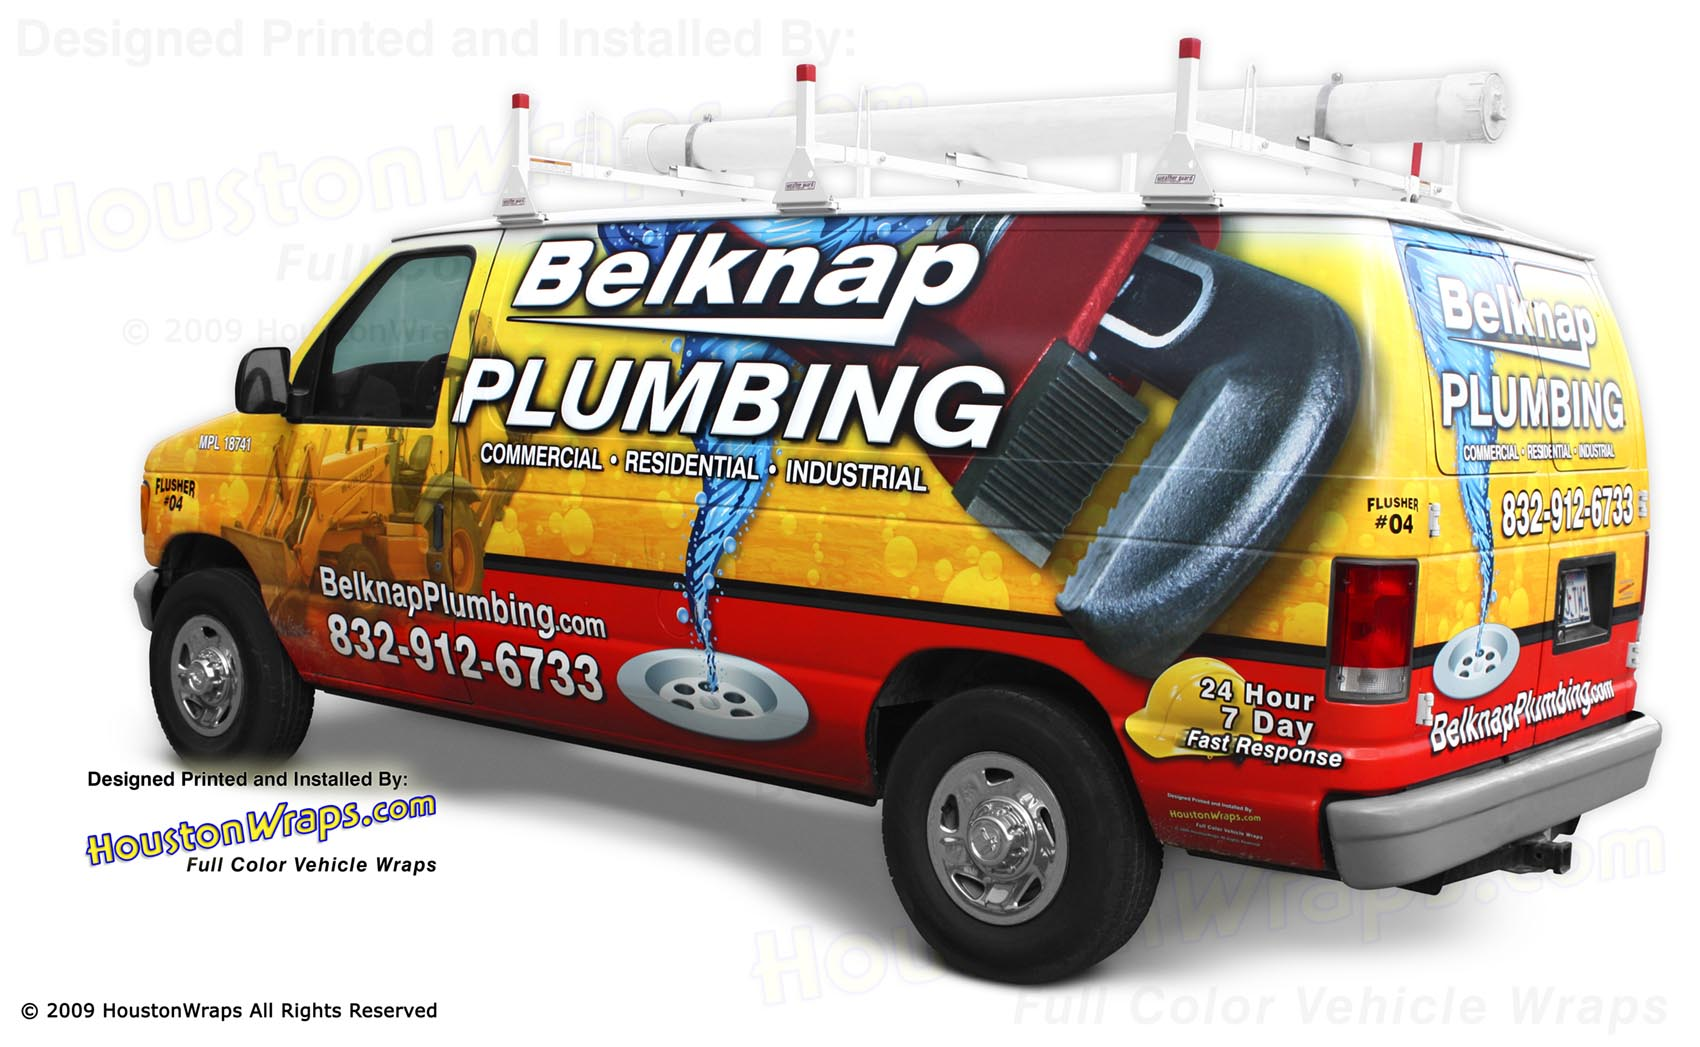 Houston Wraps - Belknap Plumbing - Van Wrap